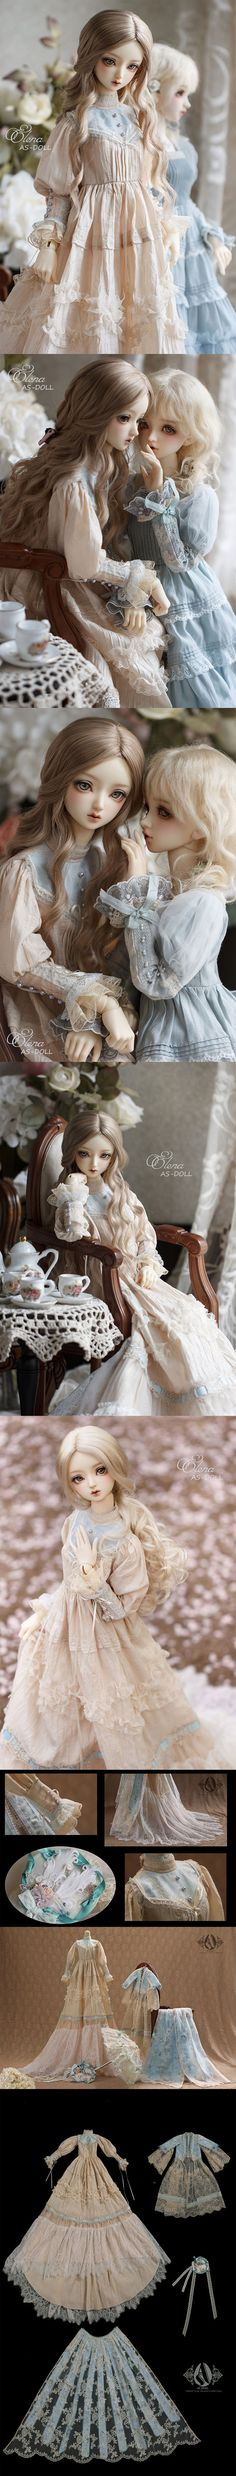 1/3 Girl Elina Victoria Dress Fullset -Blue snow CL36220160602 for SD Ball-jointed Doll_SD_SD_CLOTHING_Ball Jointed Dolls (BJD) company-Legenddoll